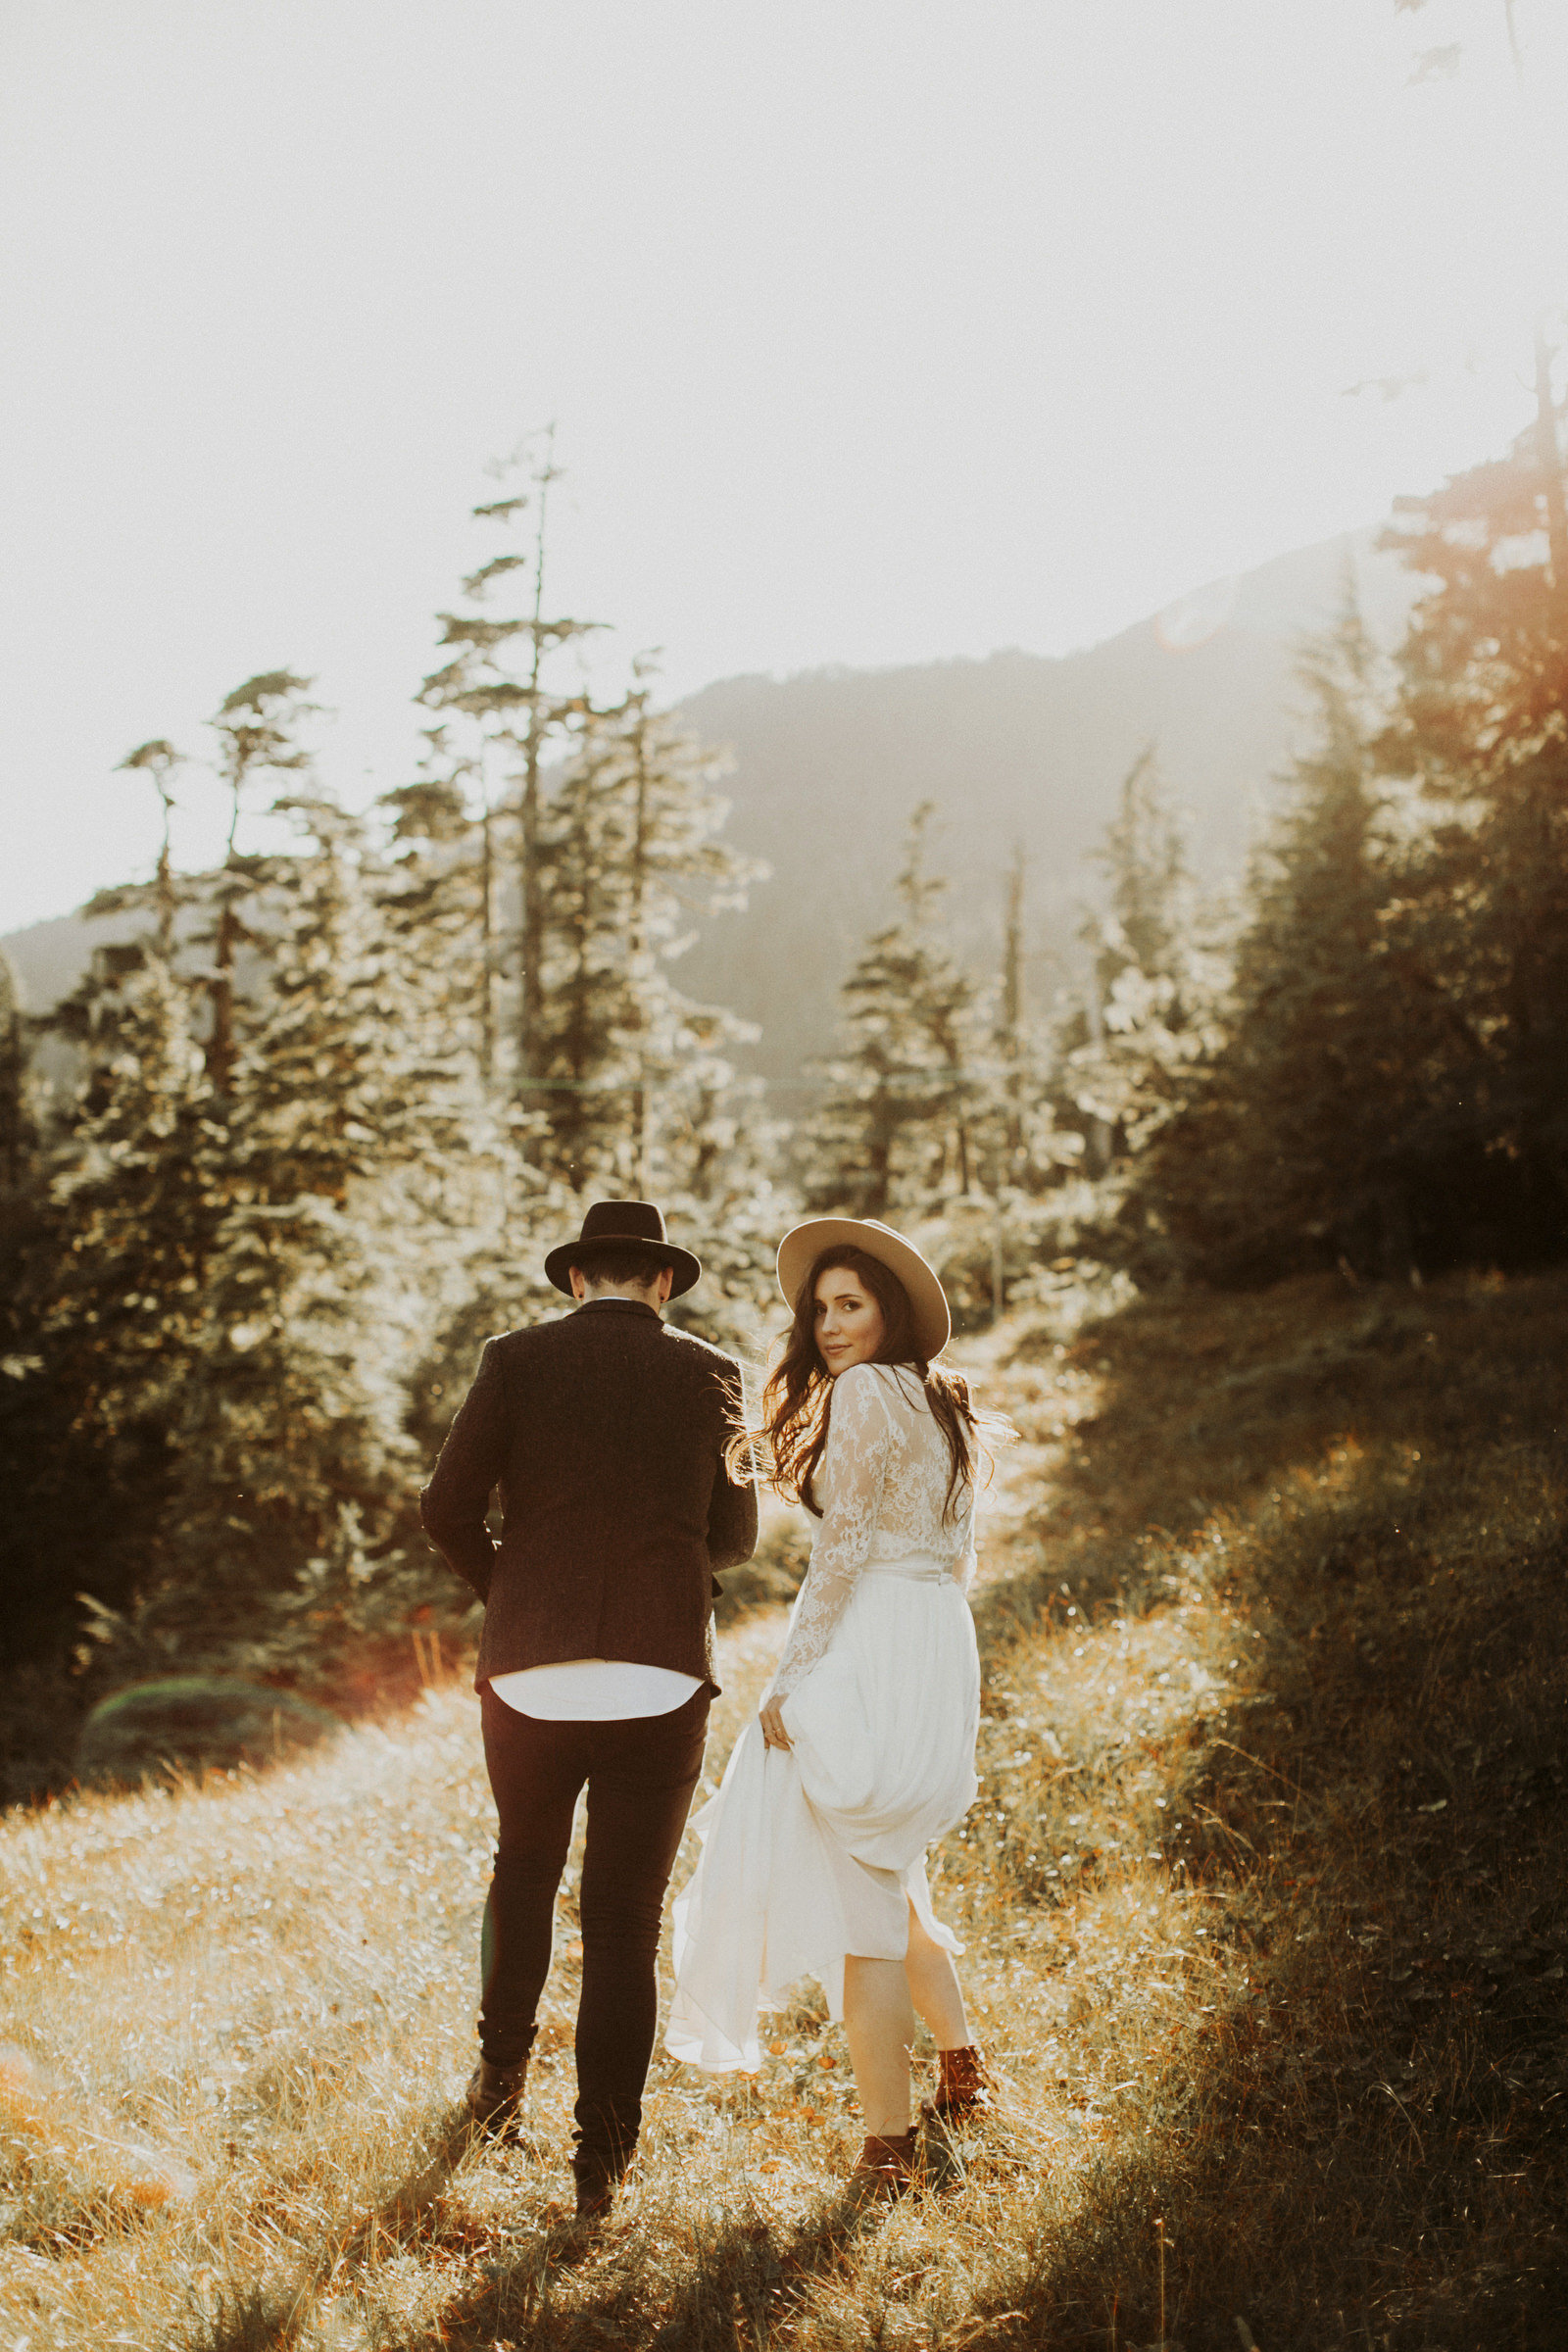 athena-and-camron-alaska-elopement-wedding-inspiration-india-earl-athena-grace-glacier-lagoon-wedding38